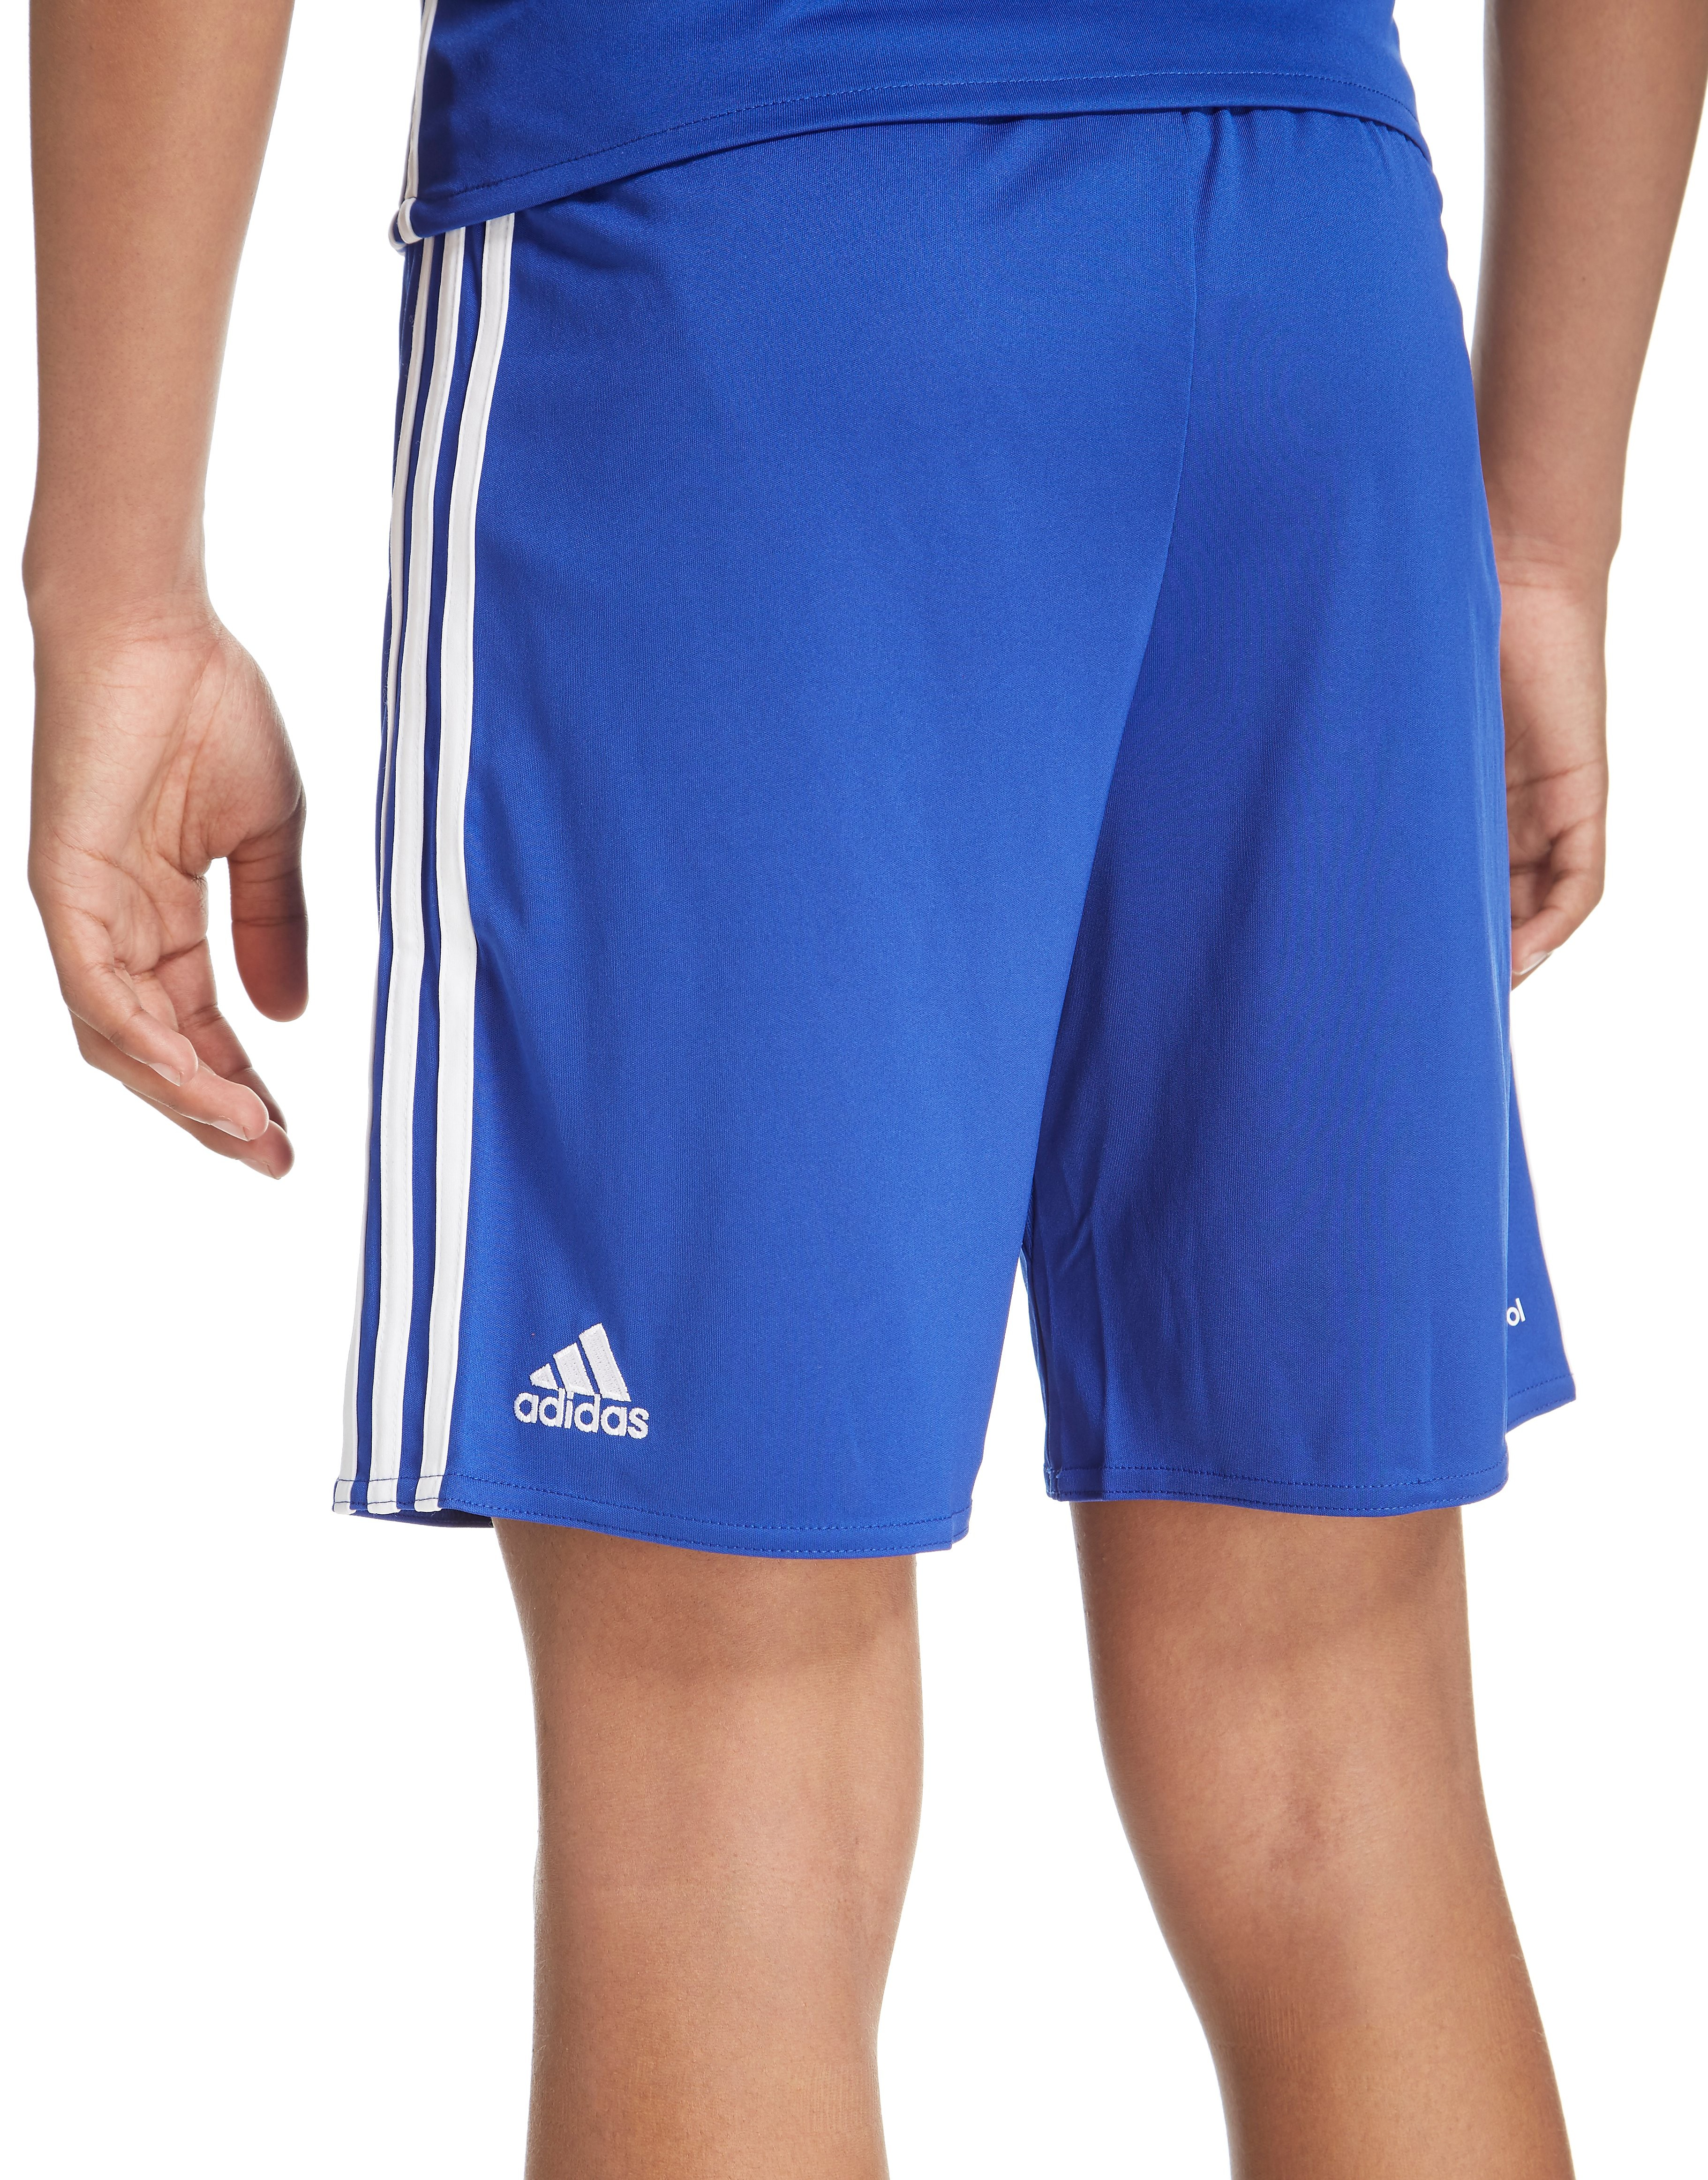 adidas Chelsea FC 2016/17 Home Shorts Junior